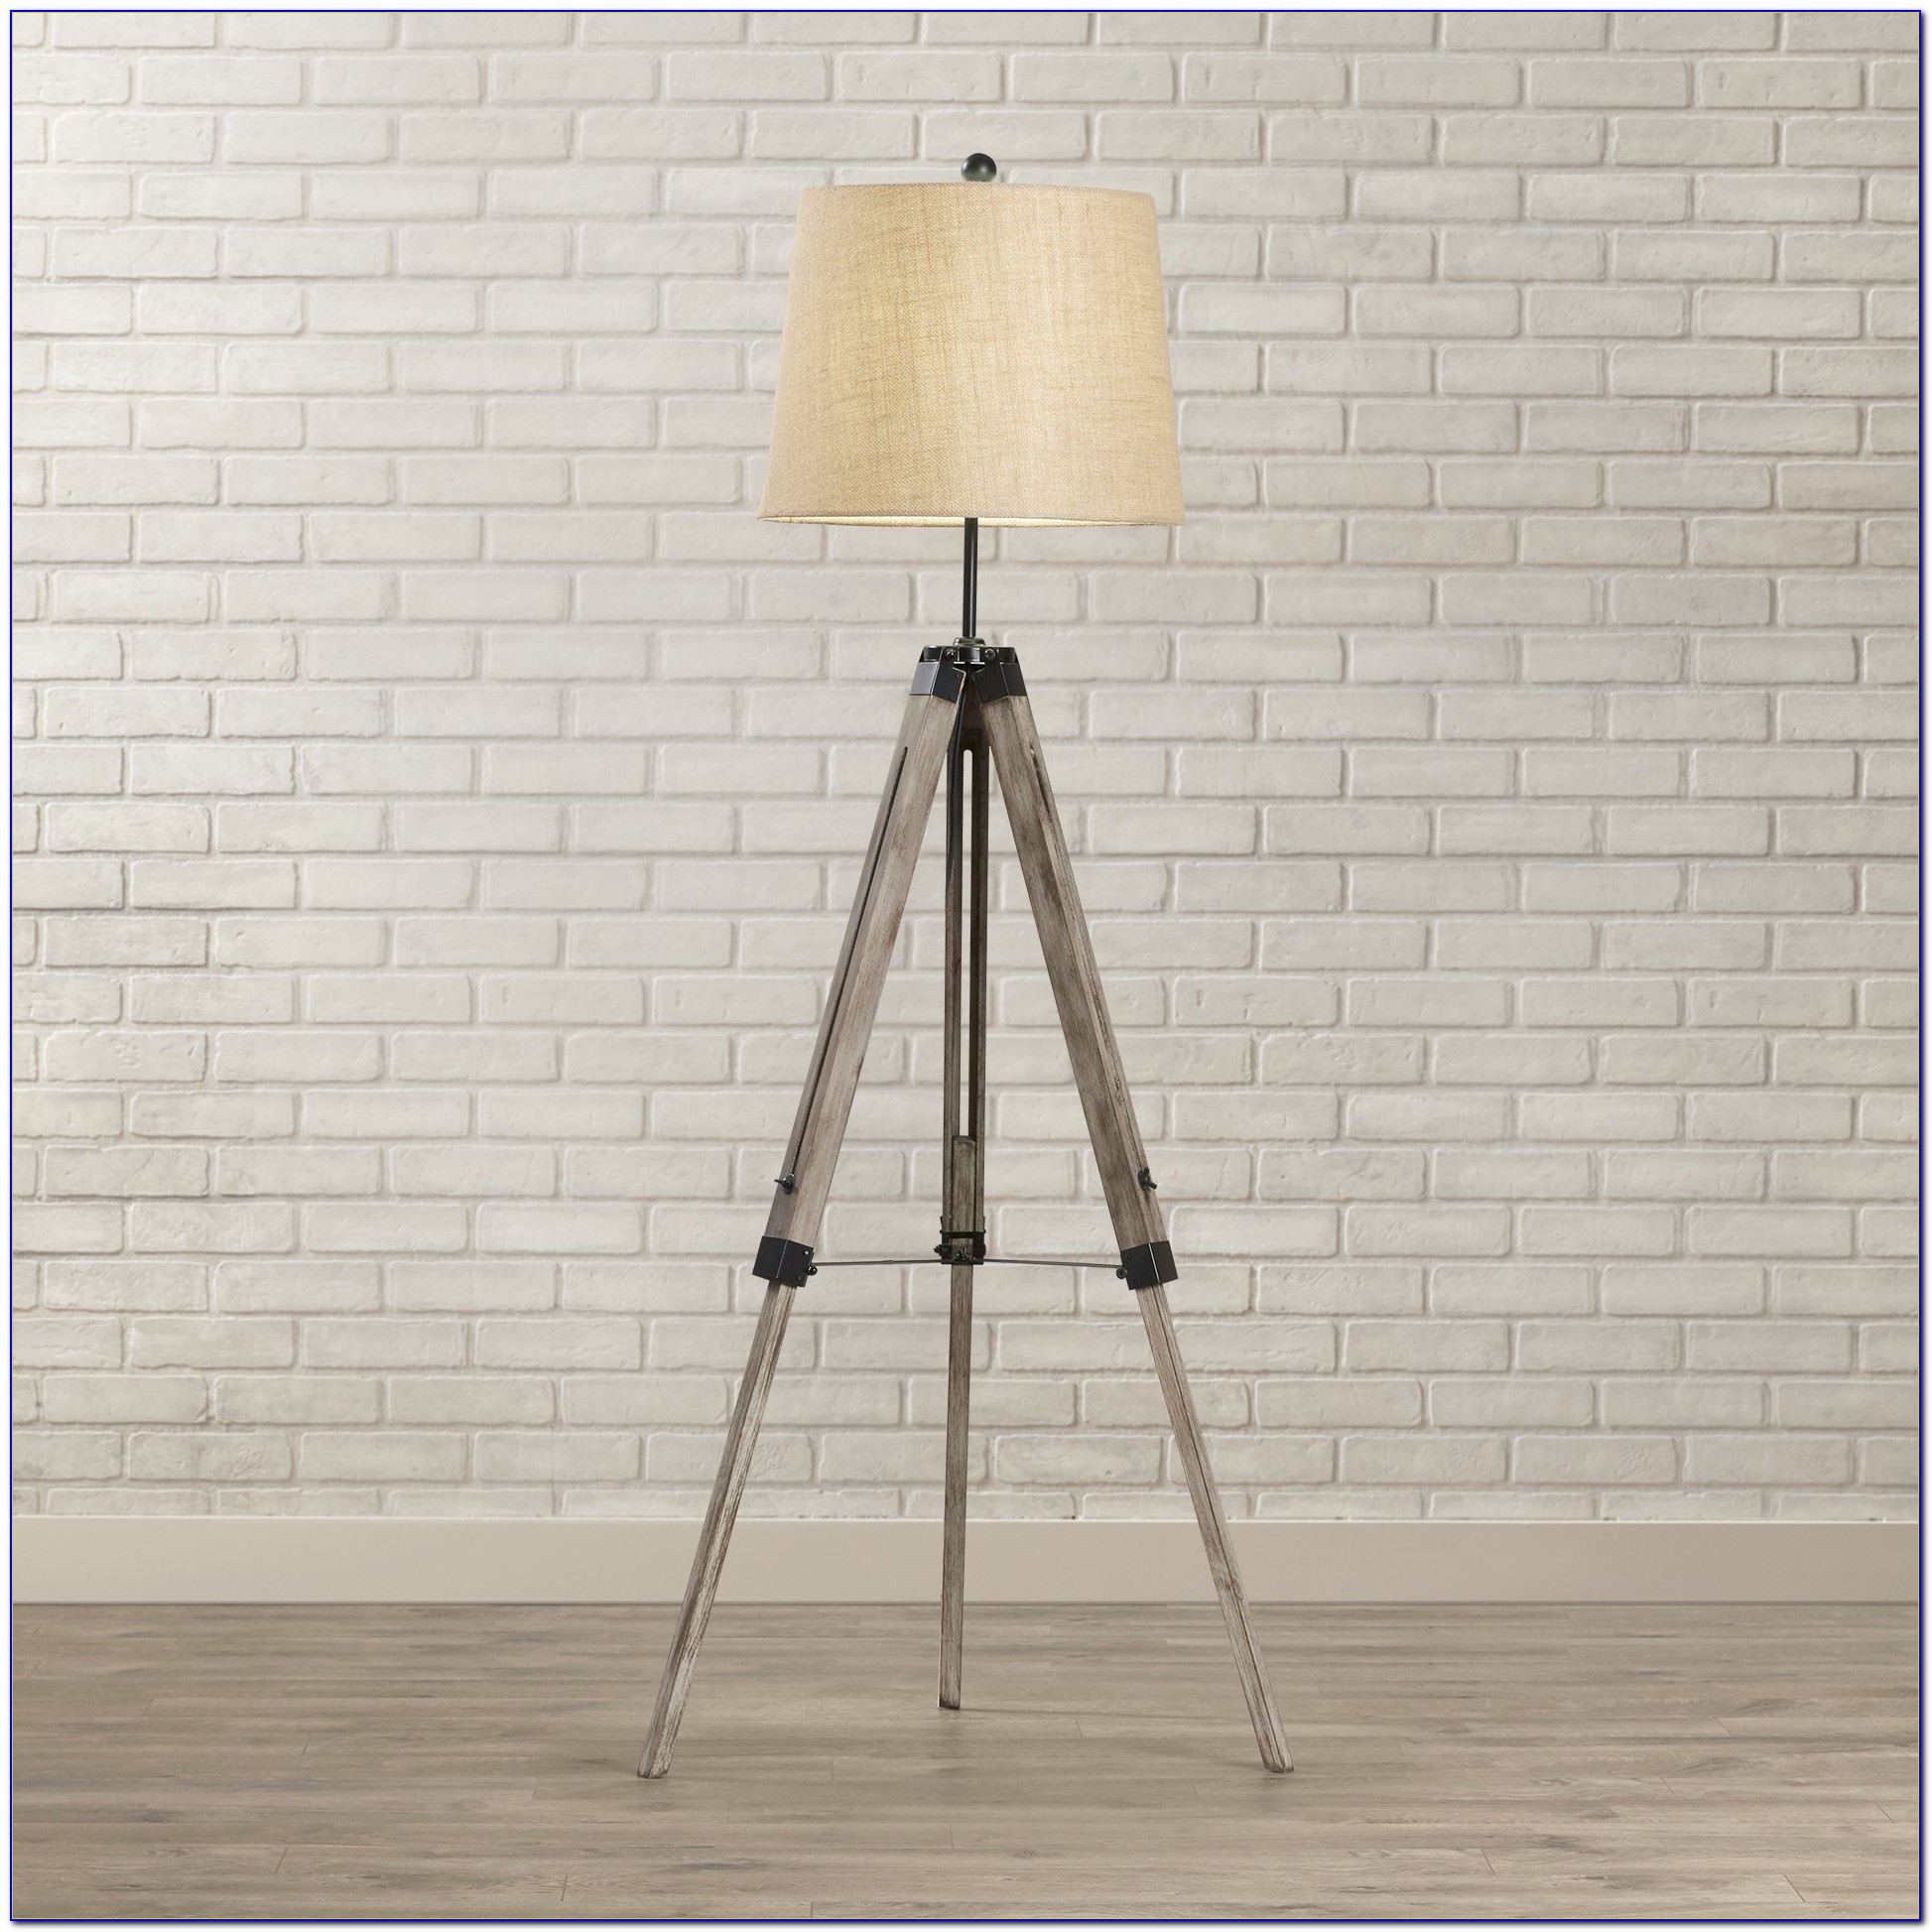 Retro Tripod Studio Floor Lamp